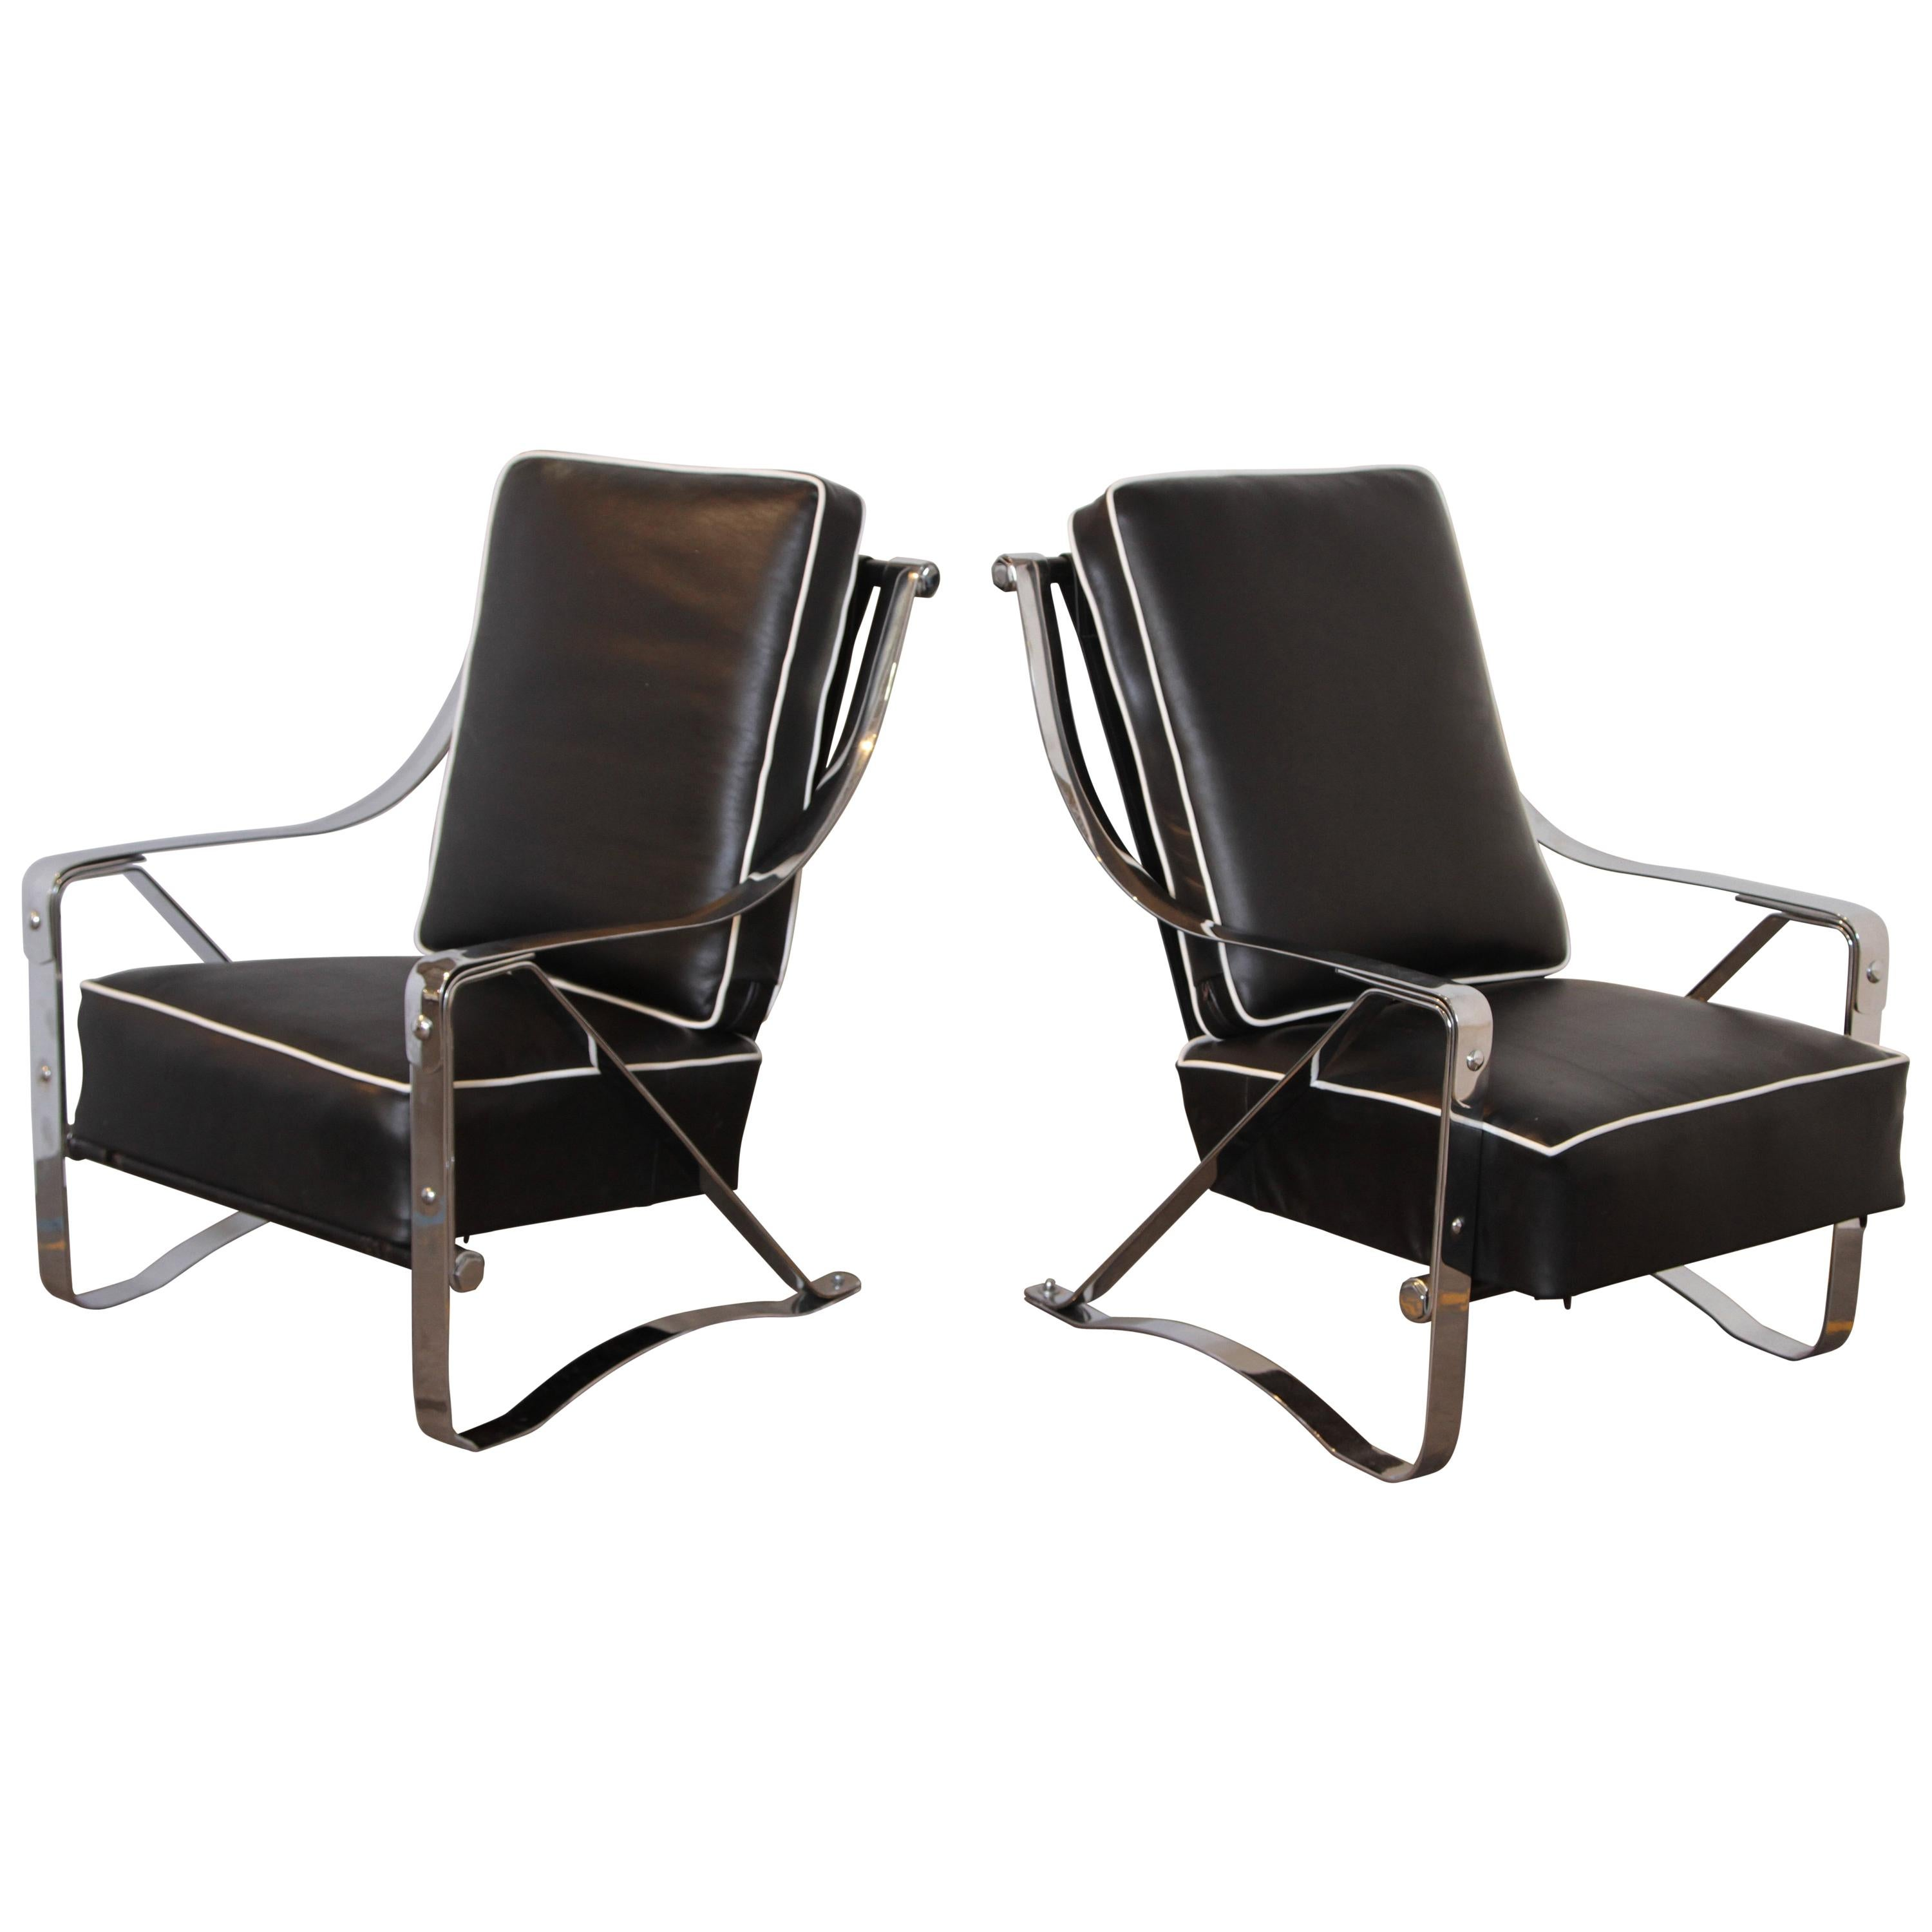 Art Deco Machine Age Chair By McKay For Sale At 1stdibs